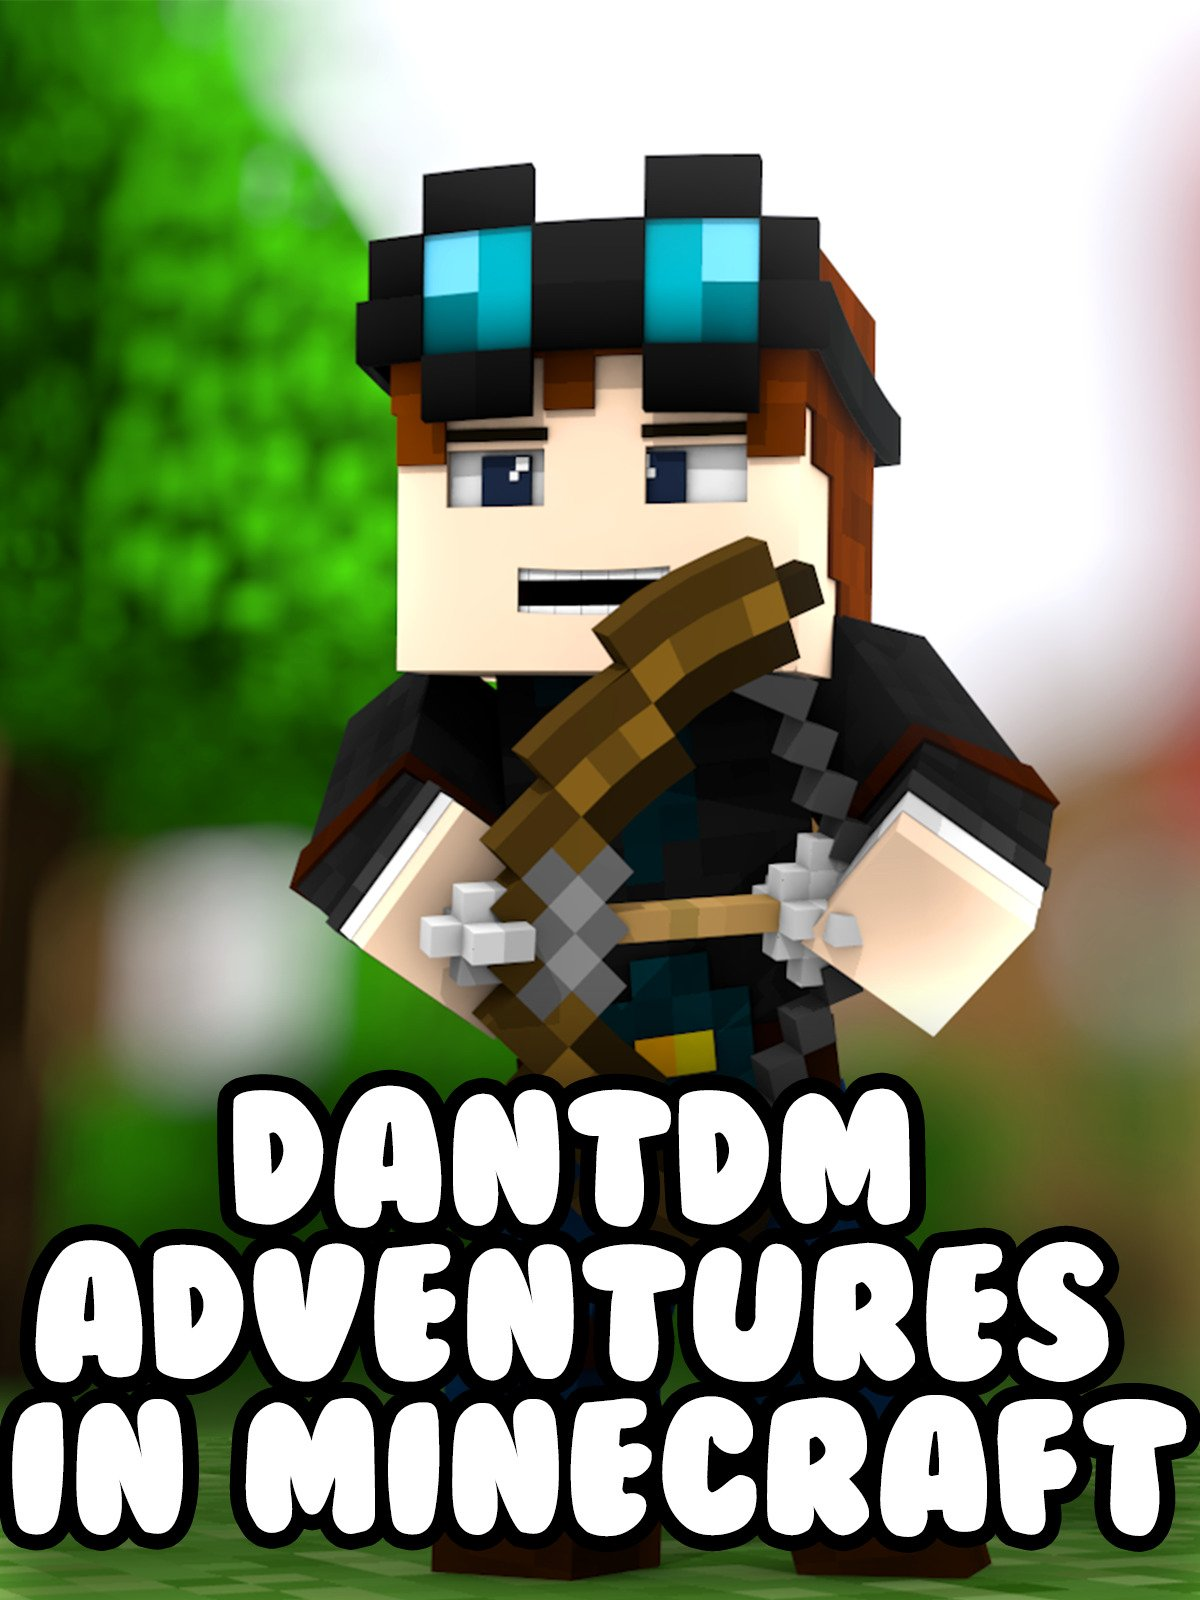 Dantdm Adventures in Minecraft